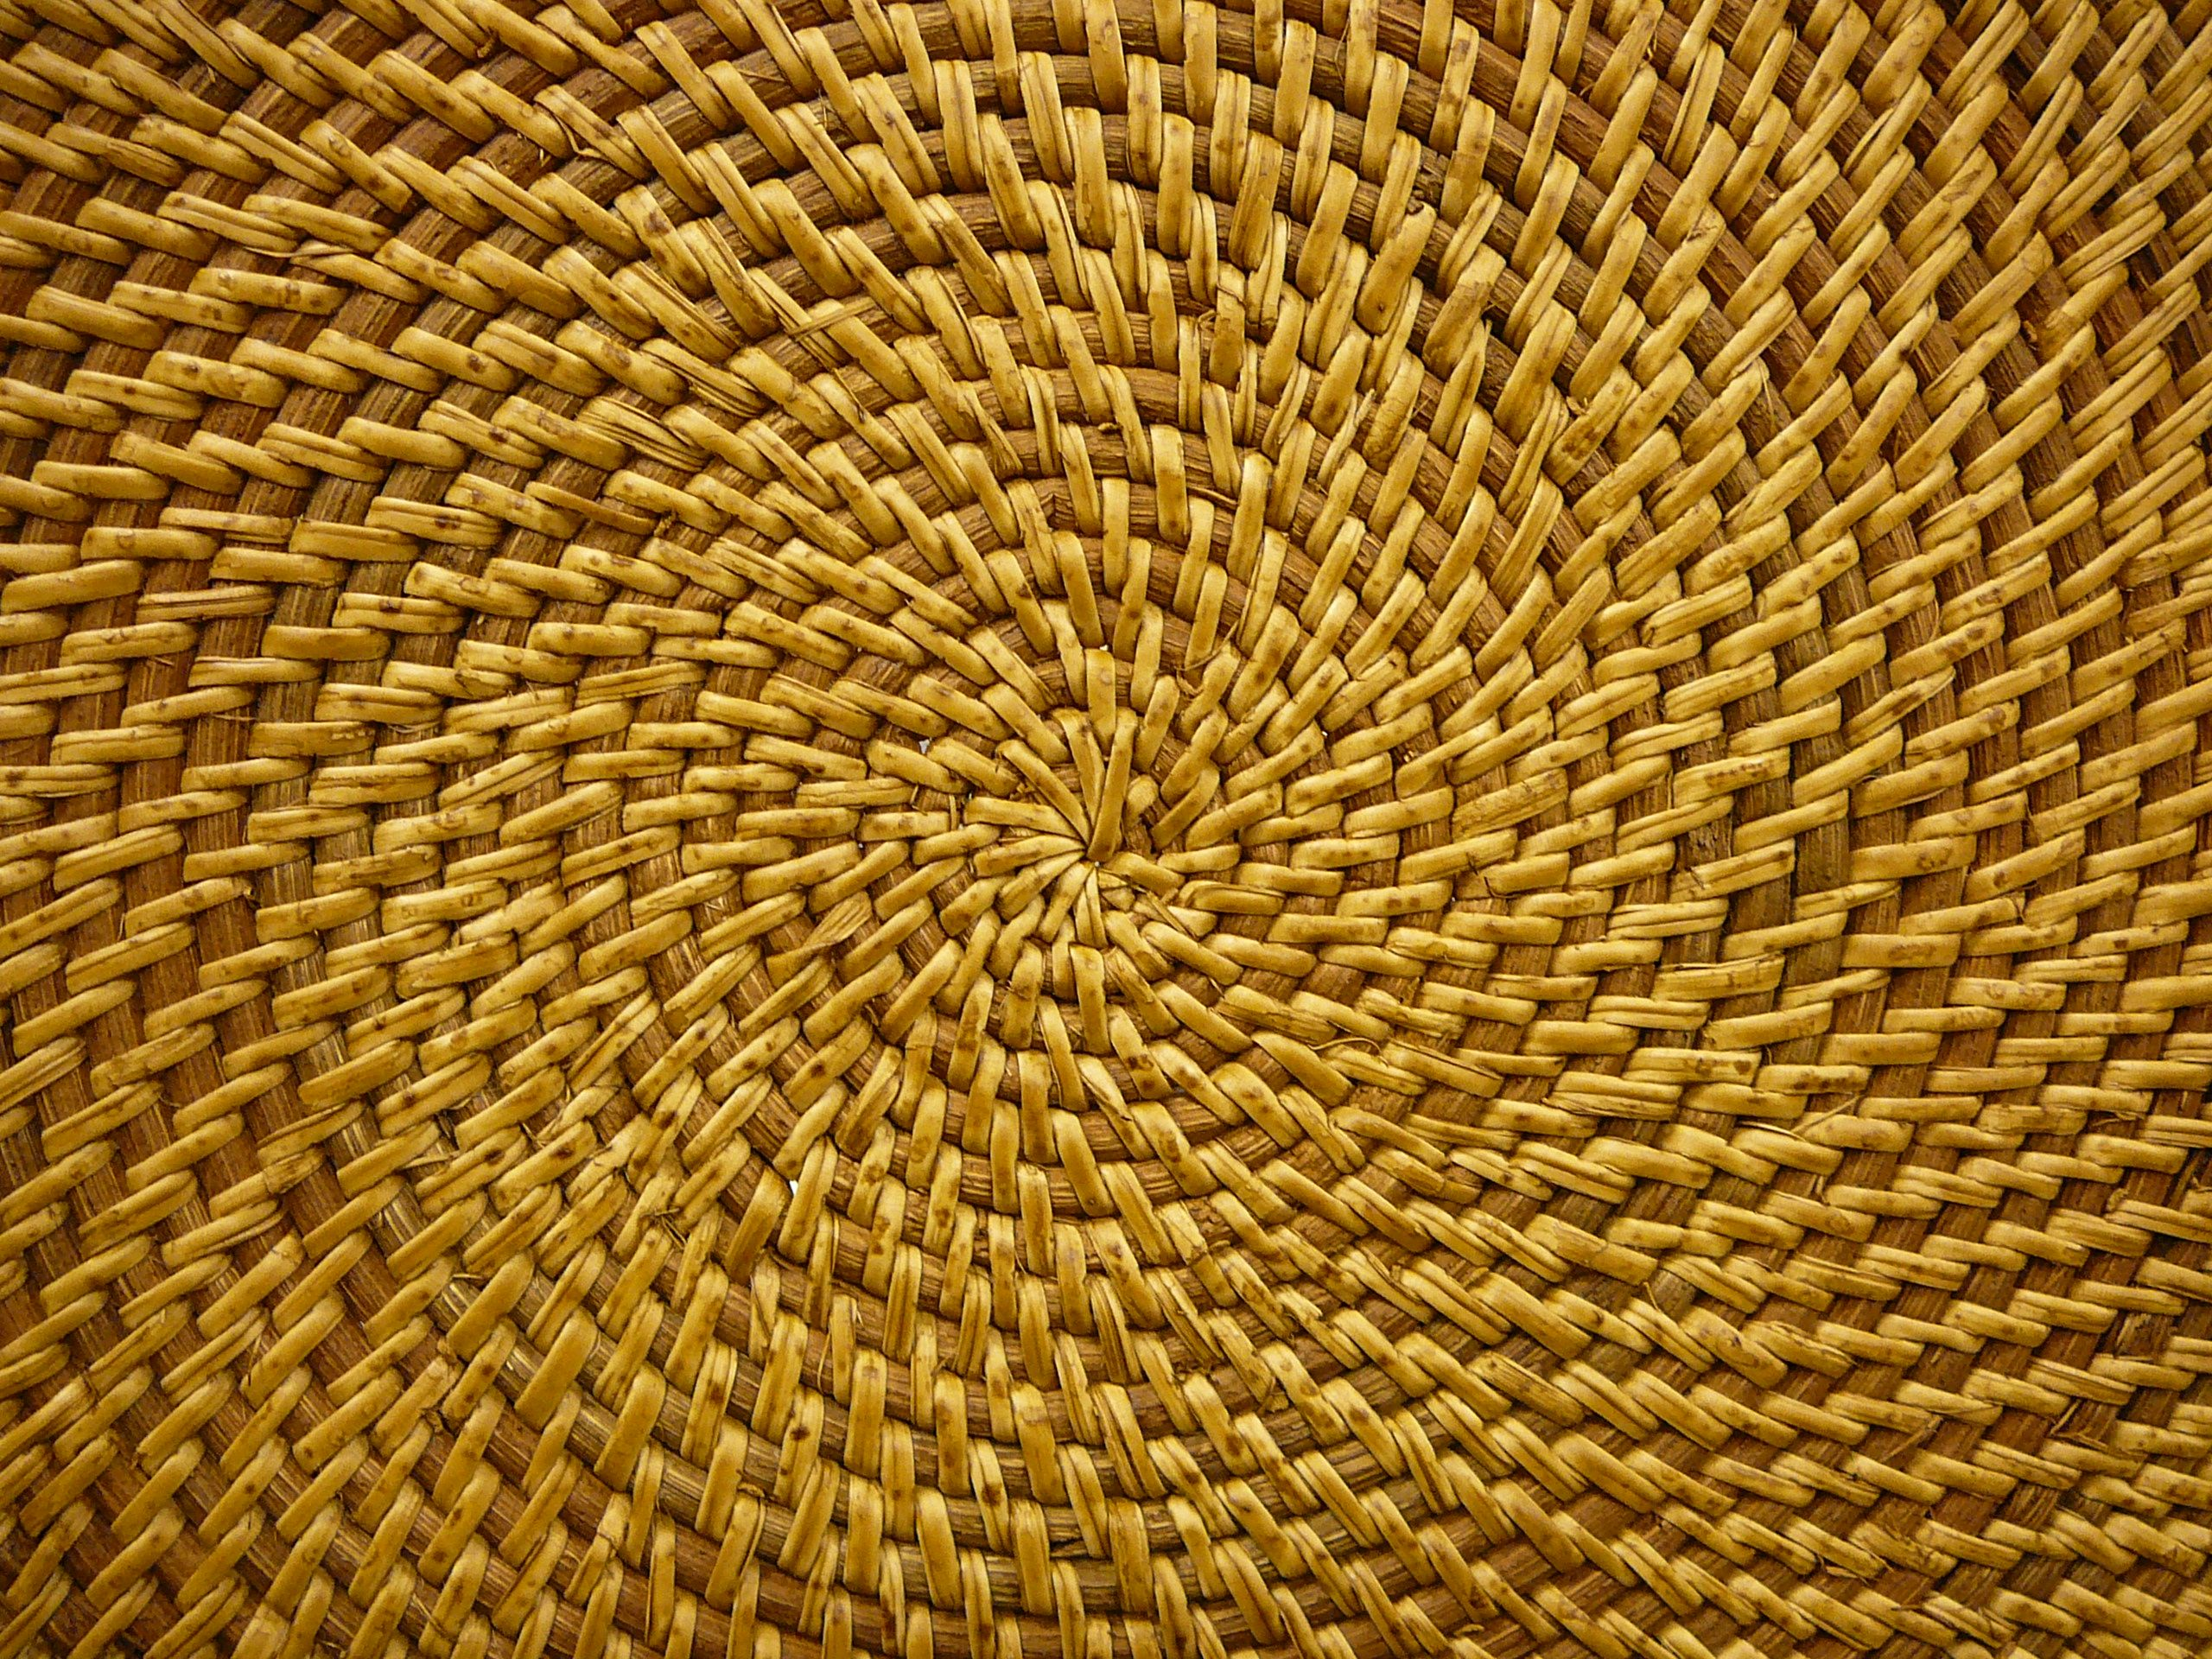 Rattan Basket Weaving Patterns : Basket weave pattern wood golden